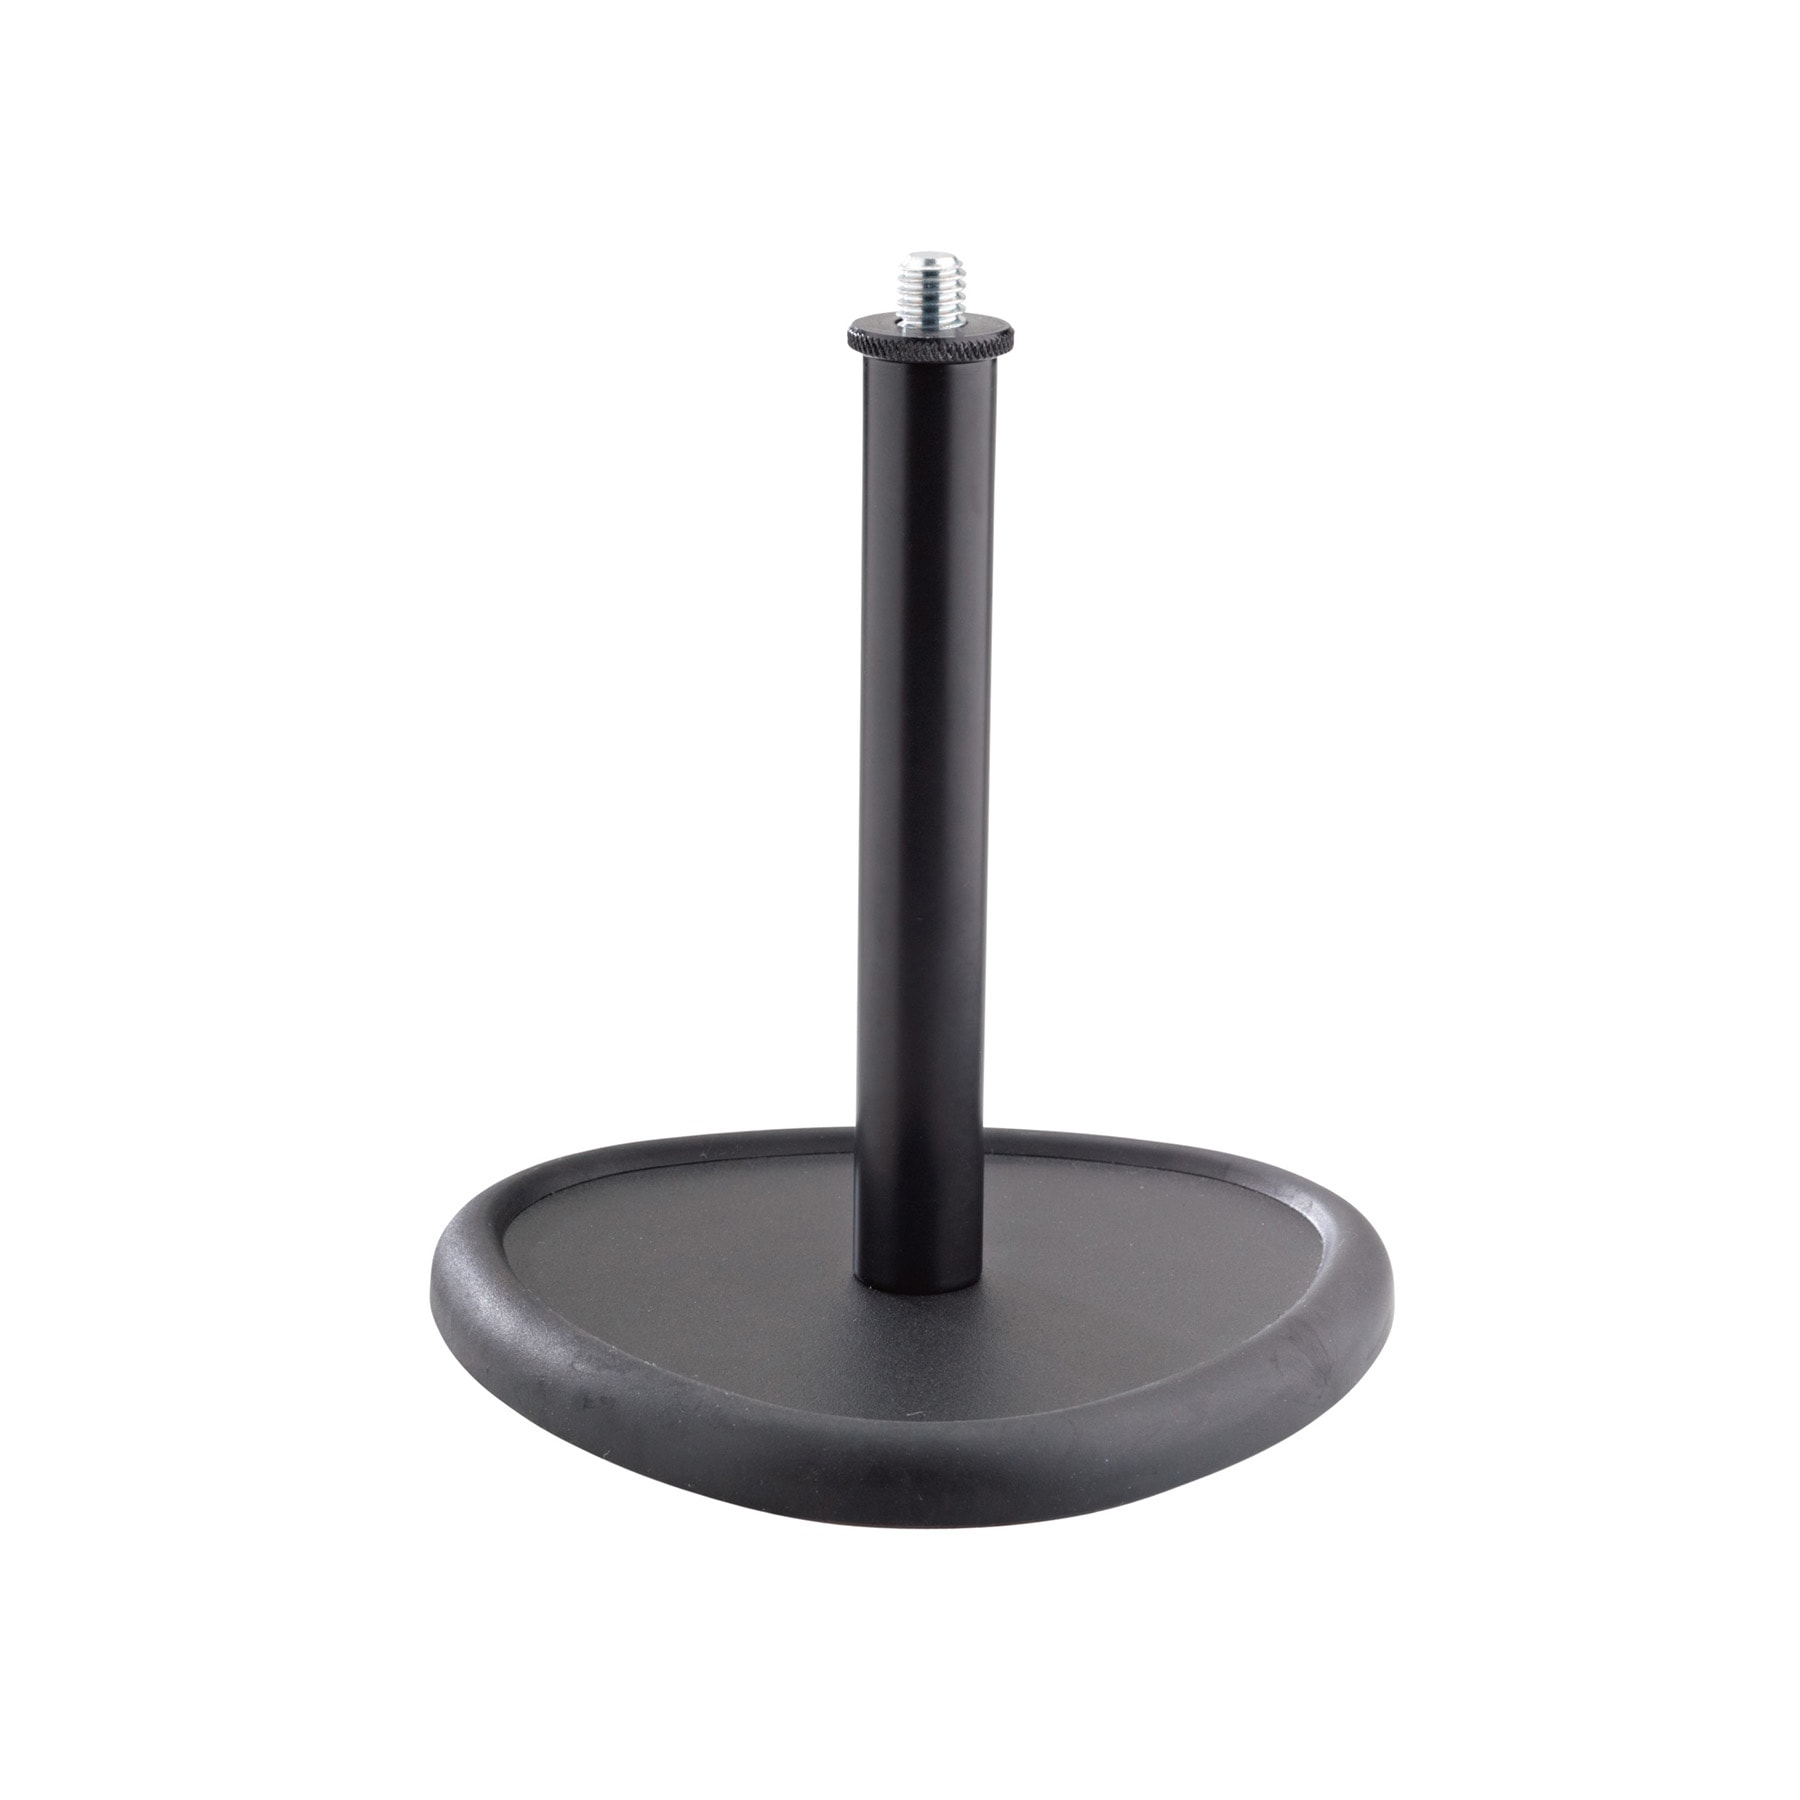 KM23230 - Table microphone stand